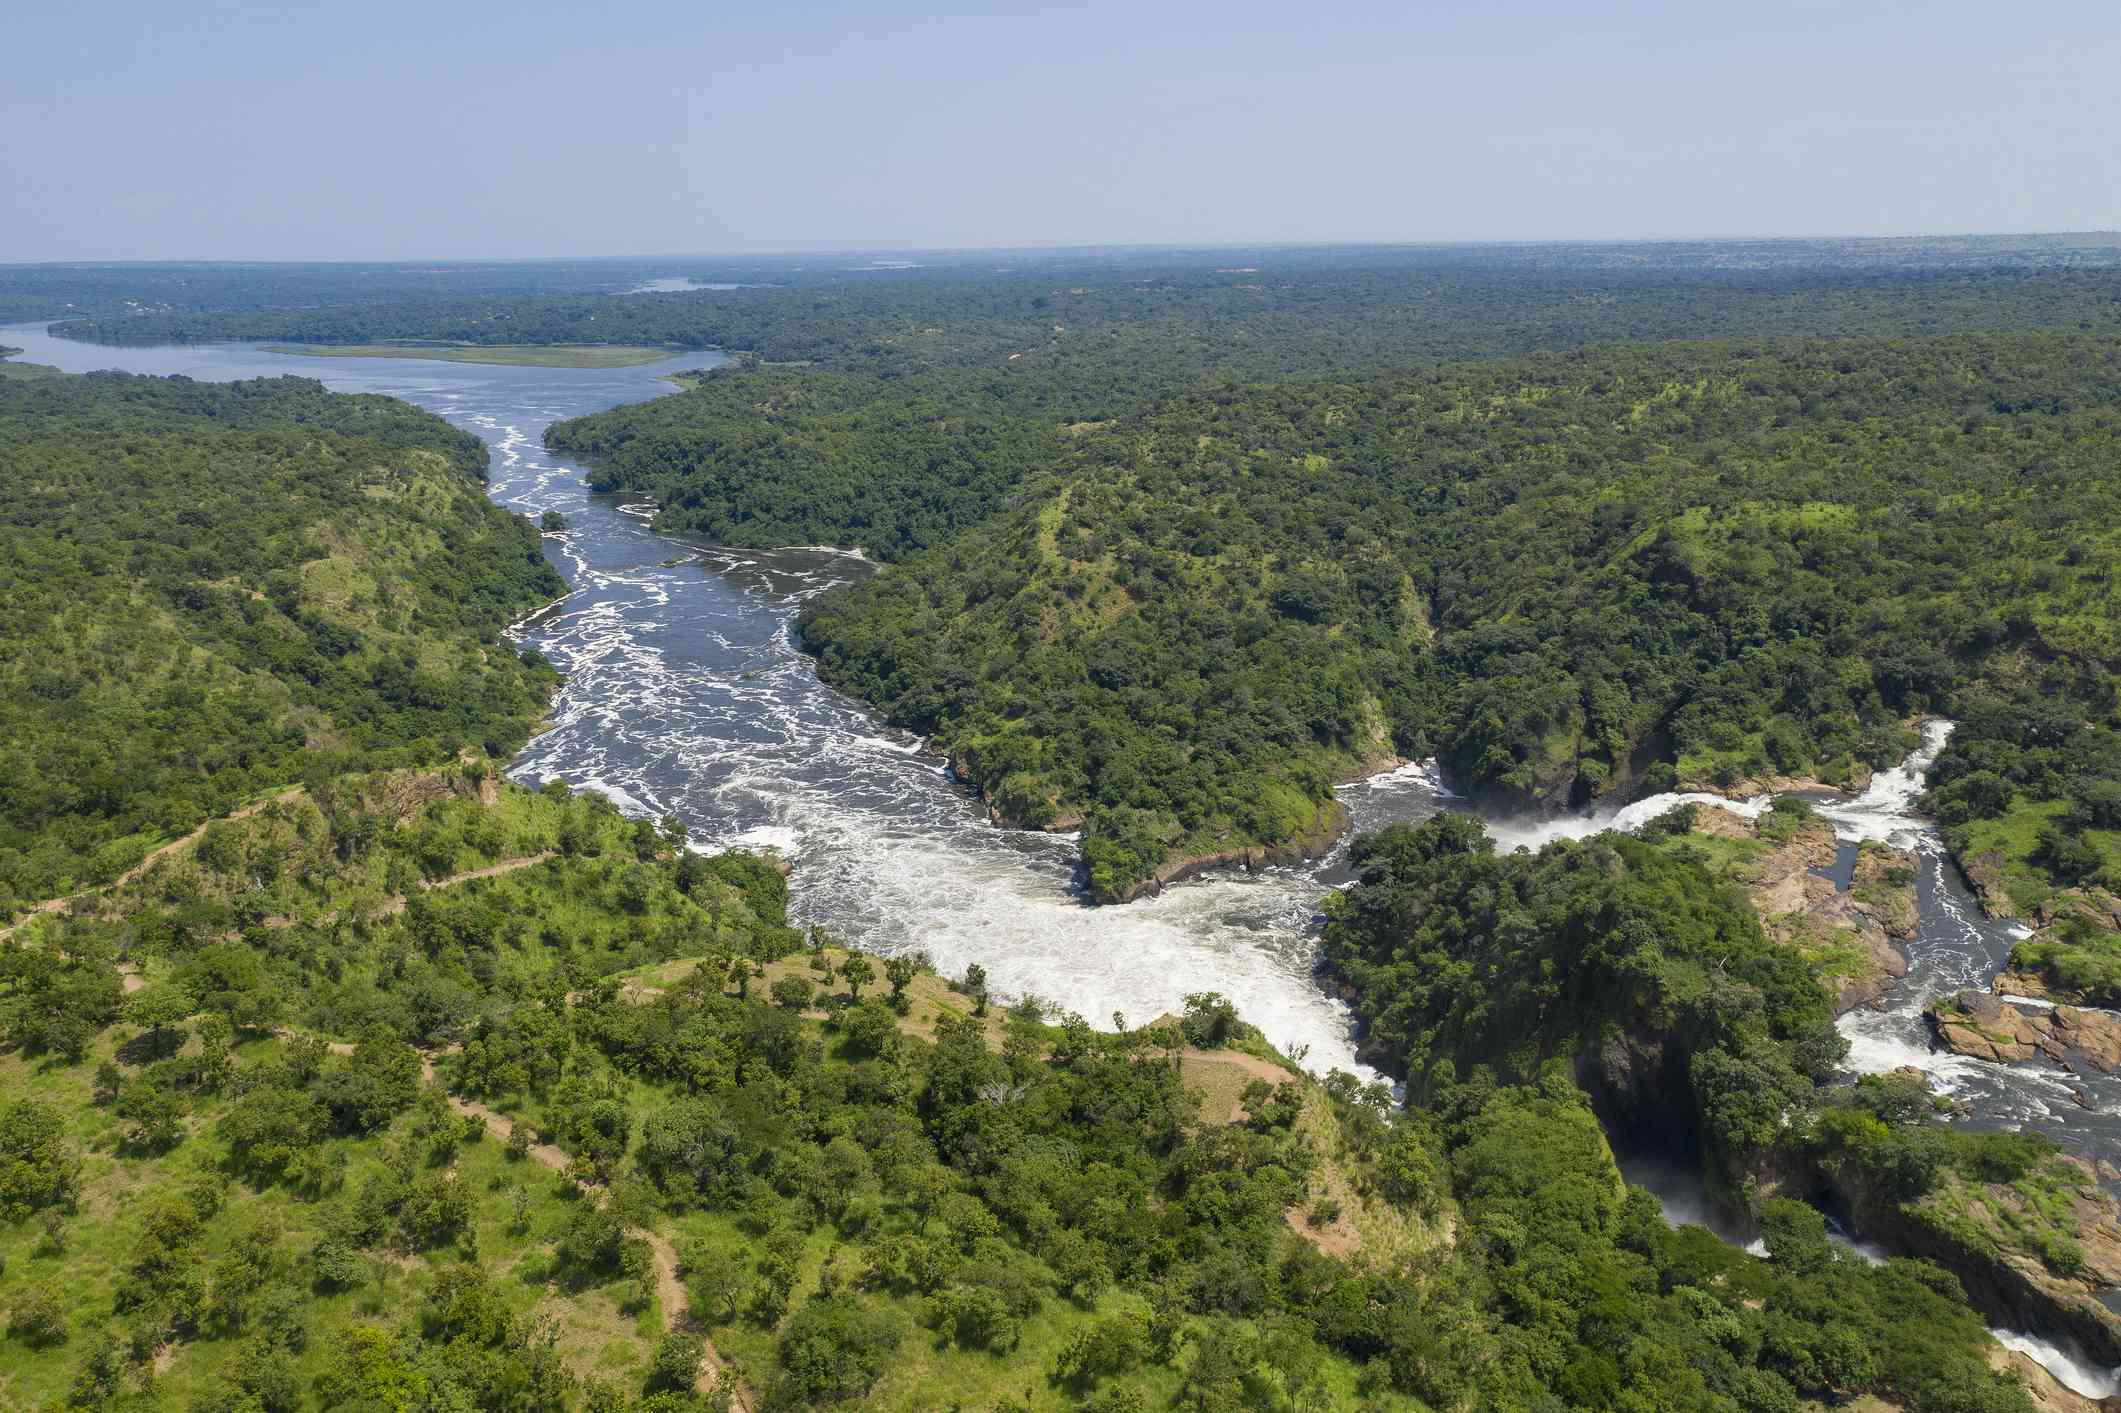 Distant view of the Murchison Falls and the Nile River in Uganda